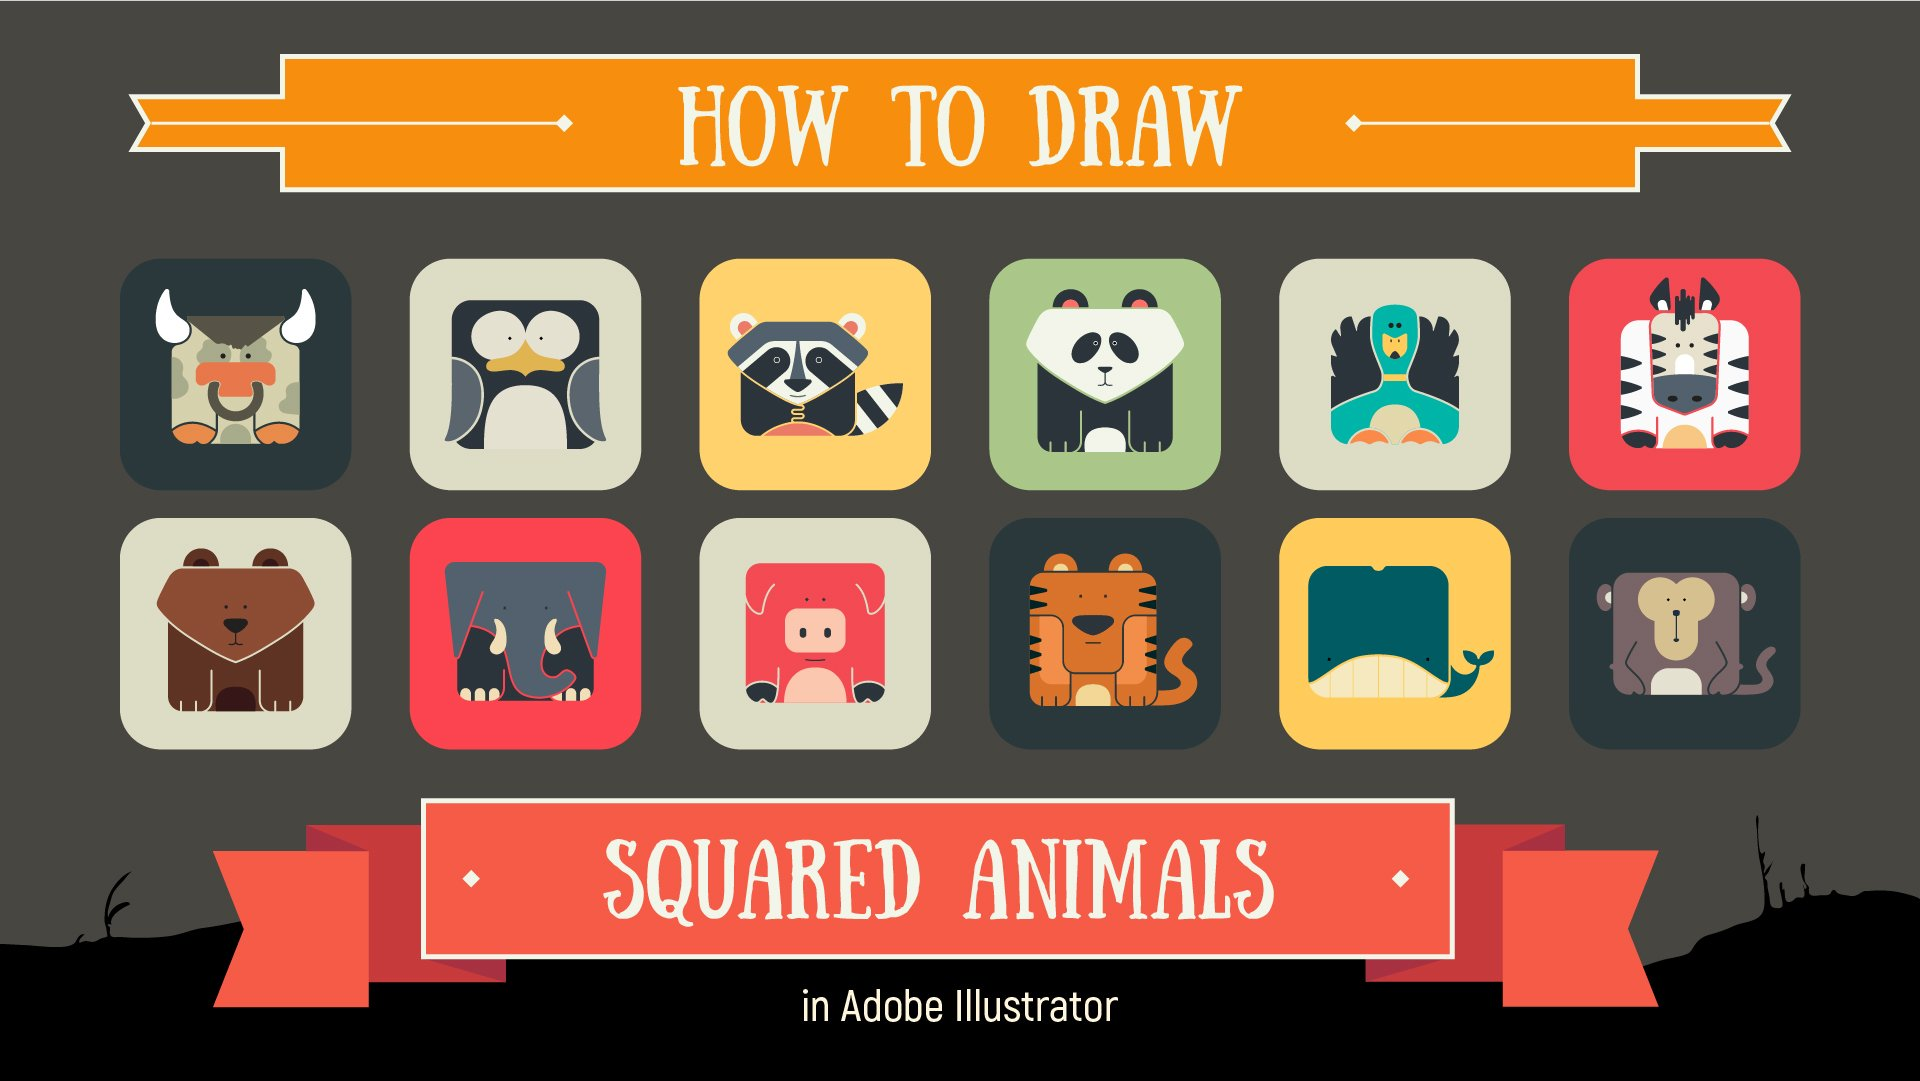 Digital Illustration: How to Draw Squared Animals in Adobe Illustrator